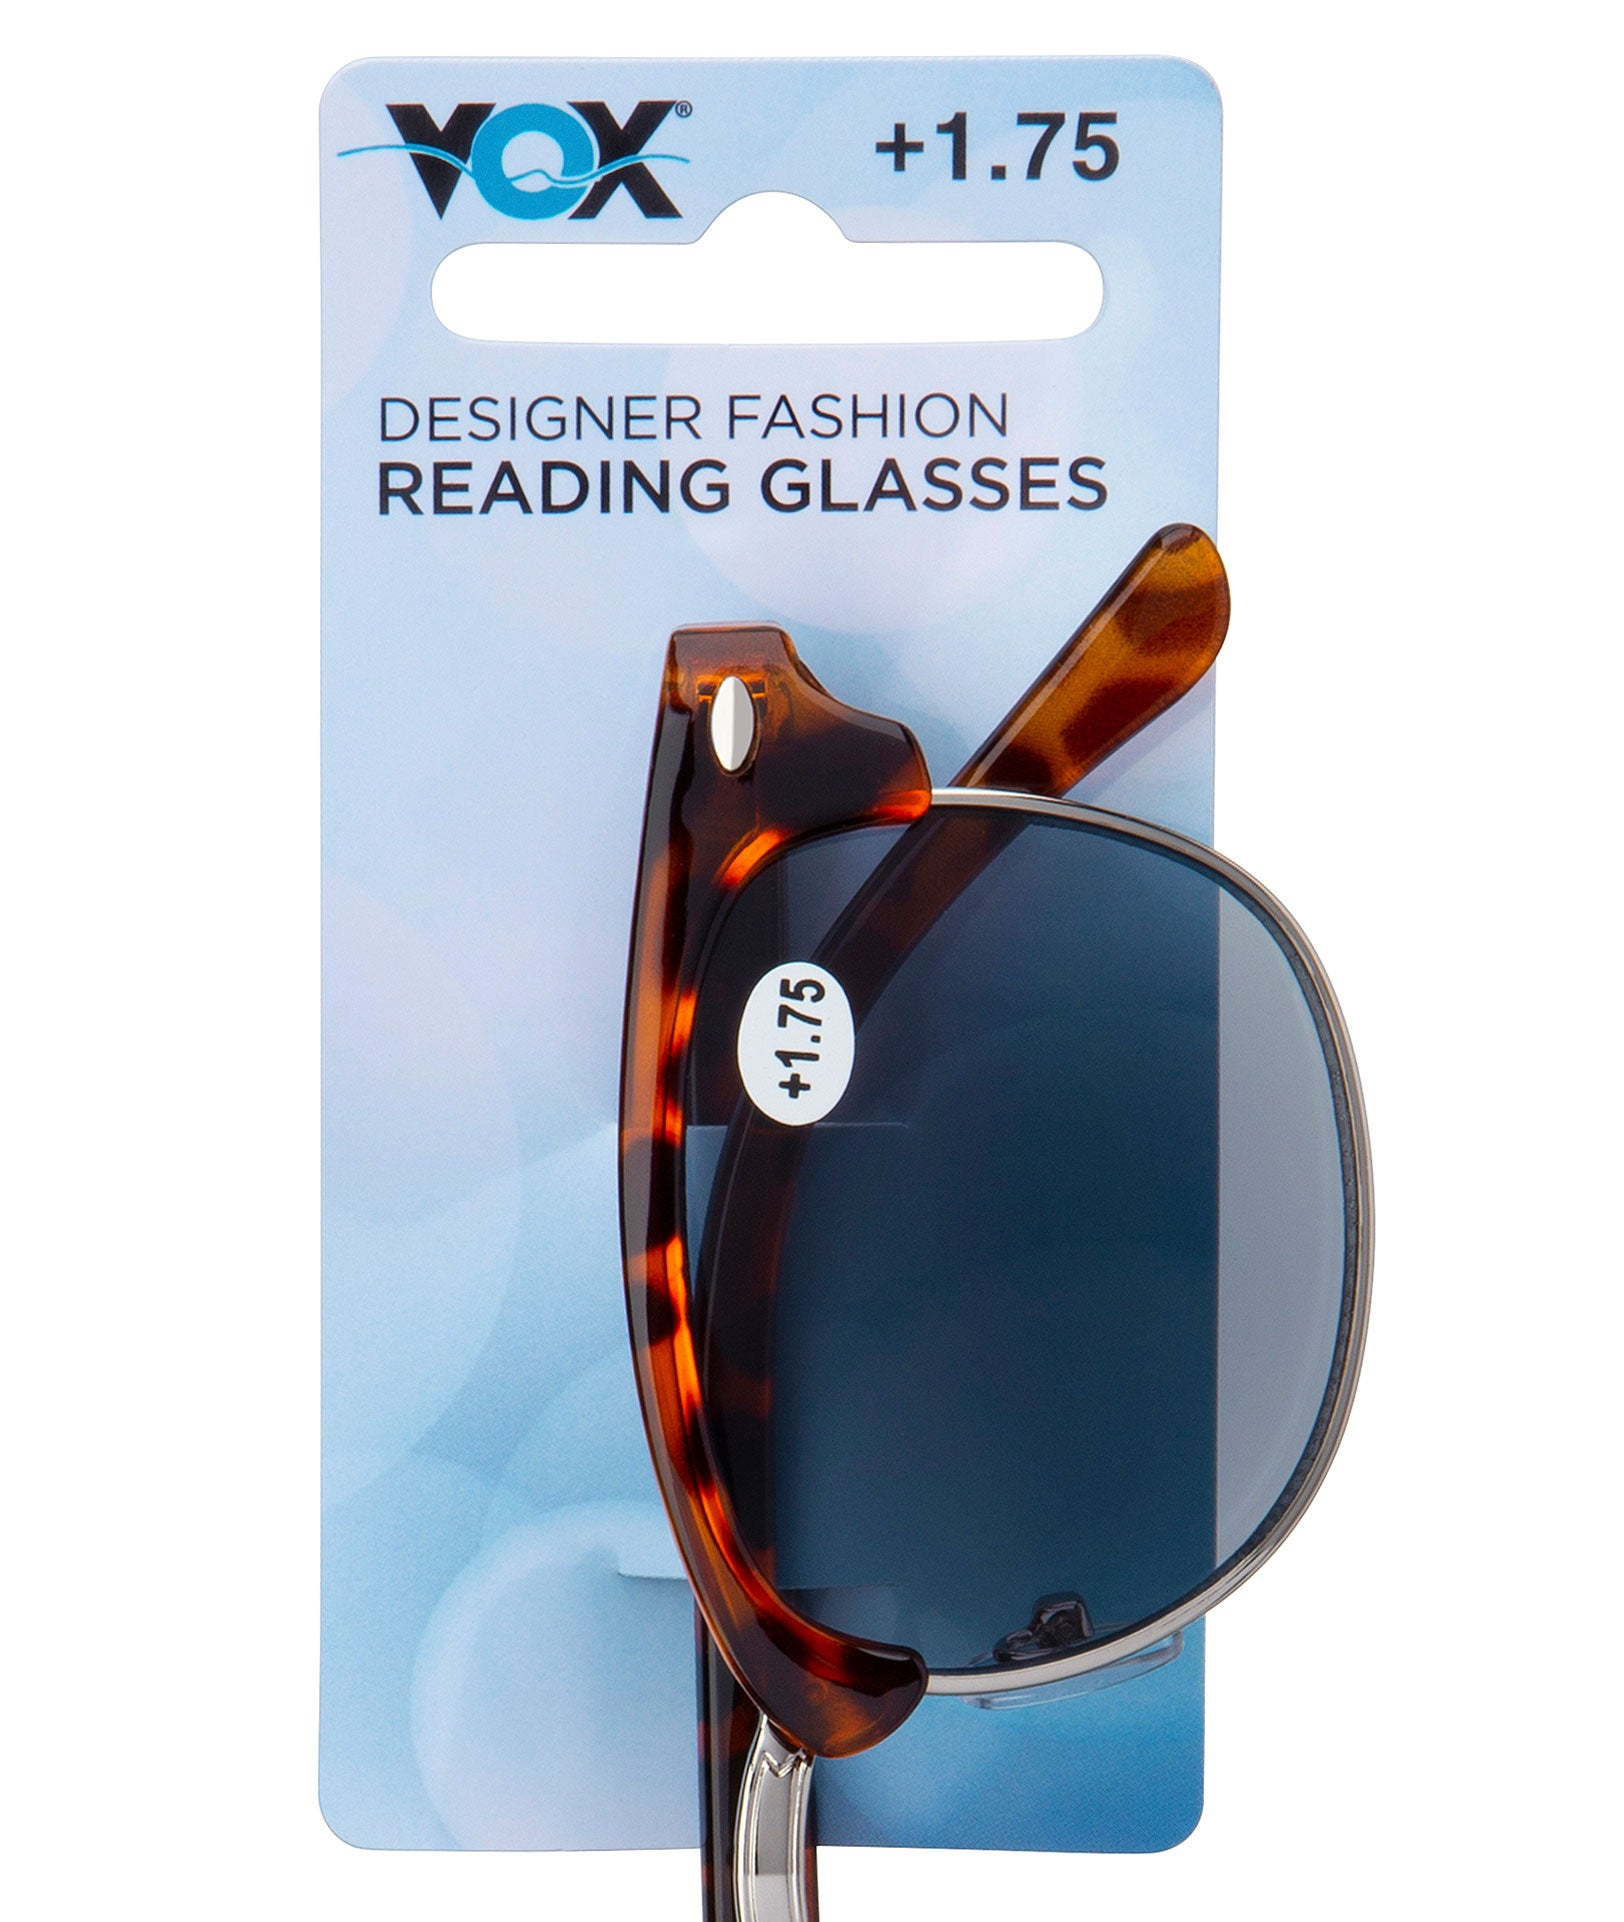 RG40 - Vox Reading Glasses Assorted Powers